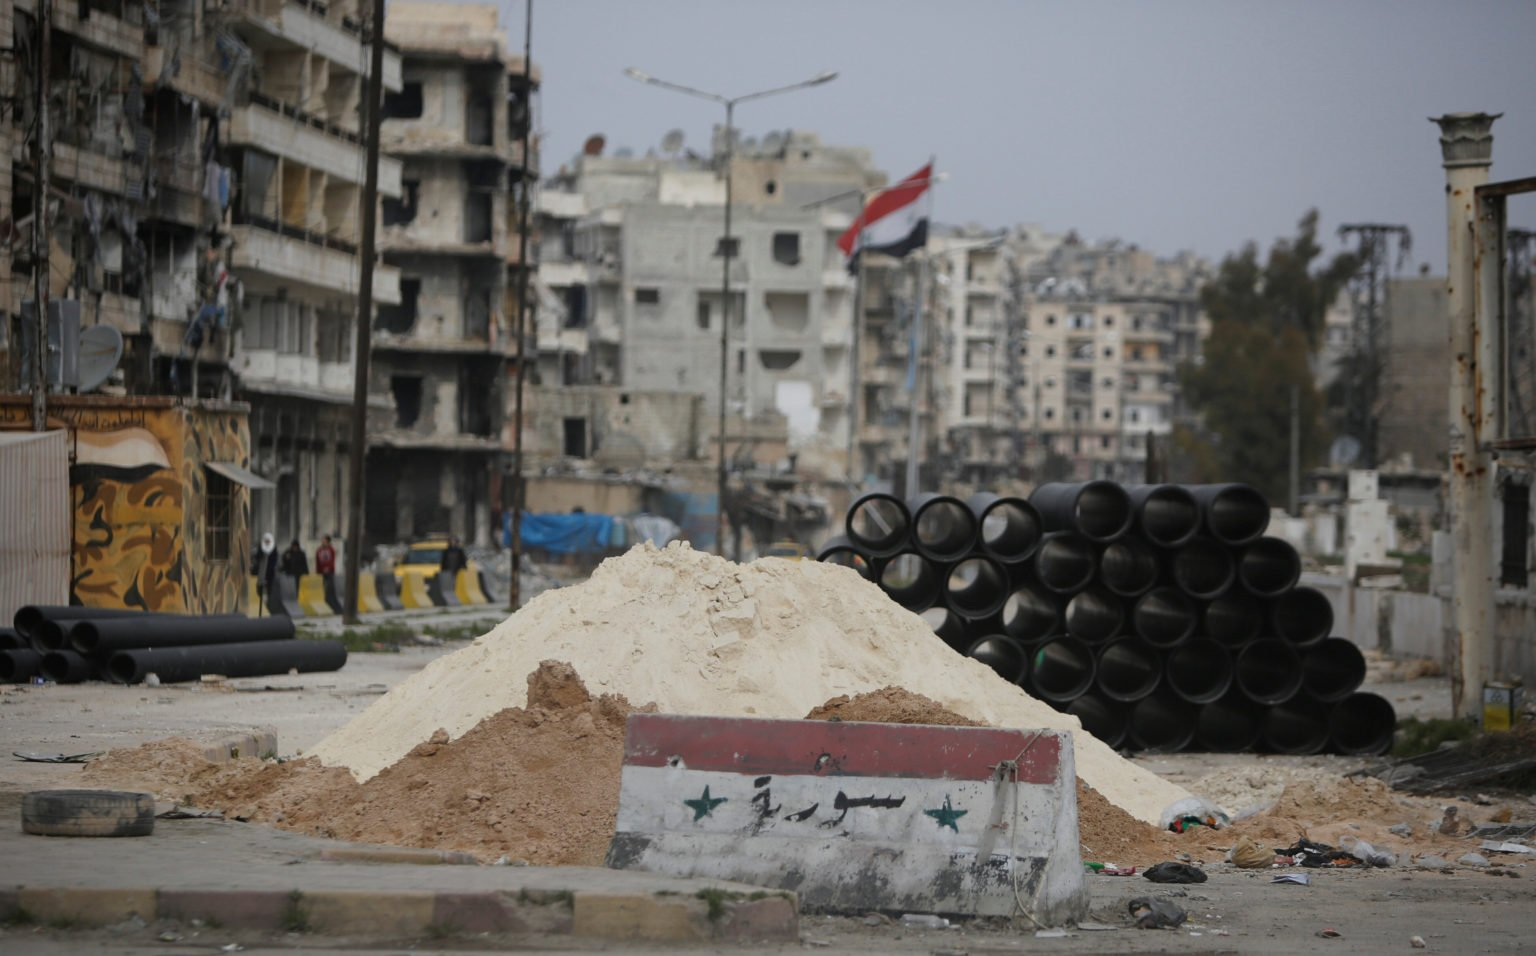 A checkpoint of the Syrian regime's forces in a neighborhood in Aleppo city — 8 February 2018 (Reuters)